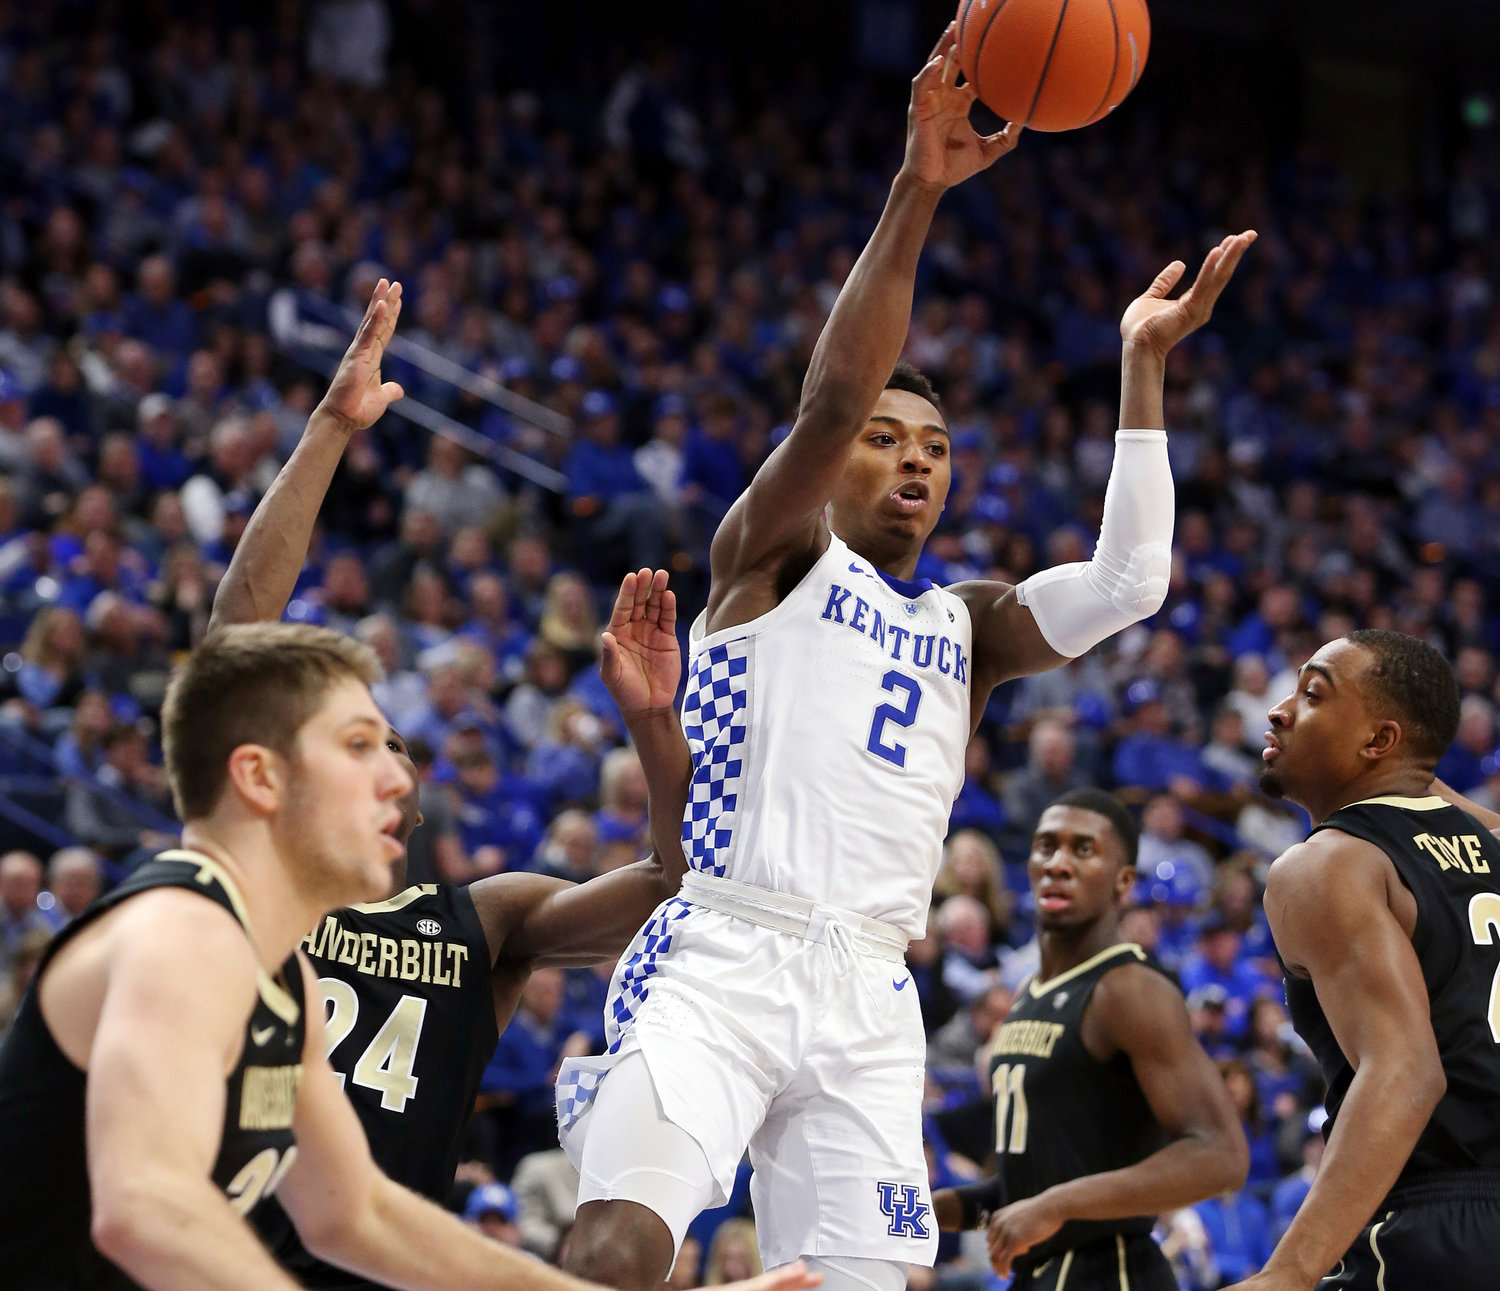 Kentucky's Ashton Hagans (2) passes between, from left, Vanderbilt's Matt Ryan, Aaron Nesmith, Simisola Shittu and Joe Toye during the second half of an NCAA college basketball game Saturday in Lexington, Kentucky. Hagans landed SEC Freshman of the Week honors due to his performances against Vanderbilt and Texas A&M over the past week.